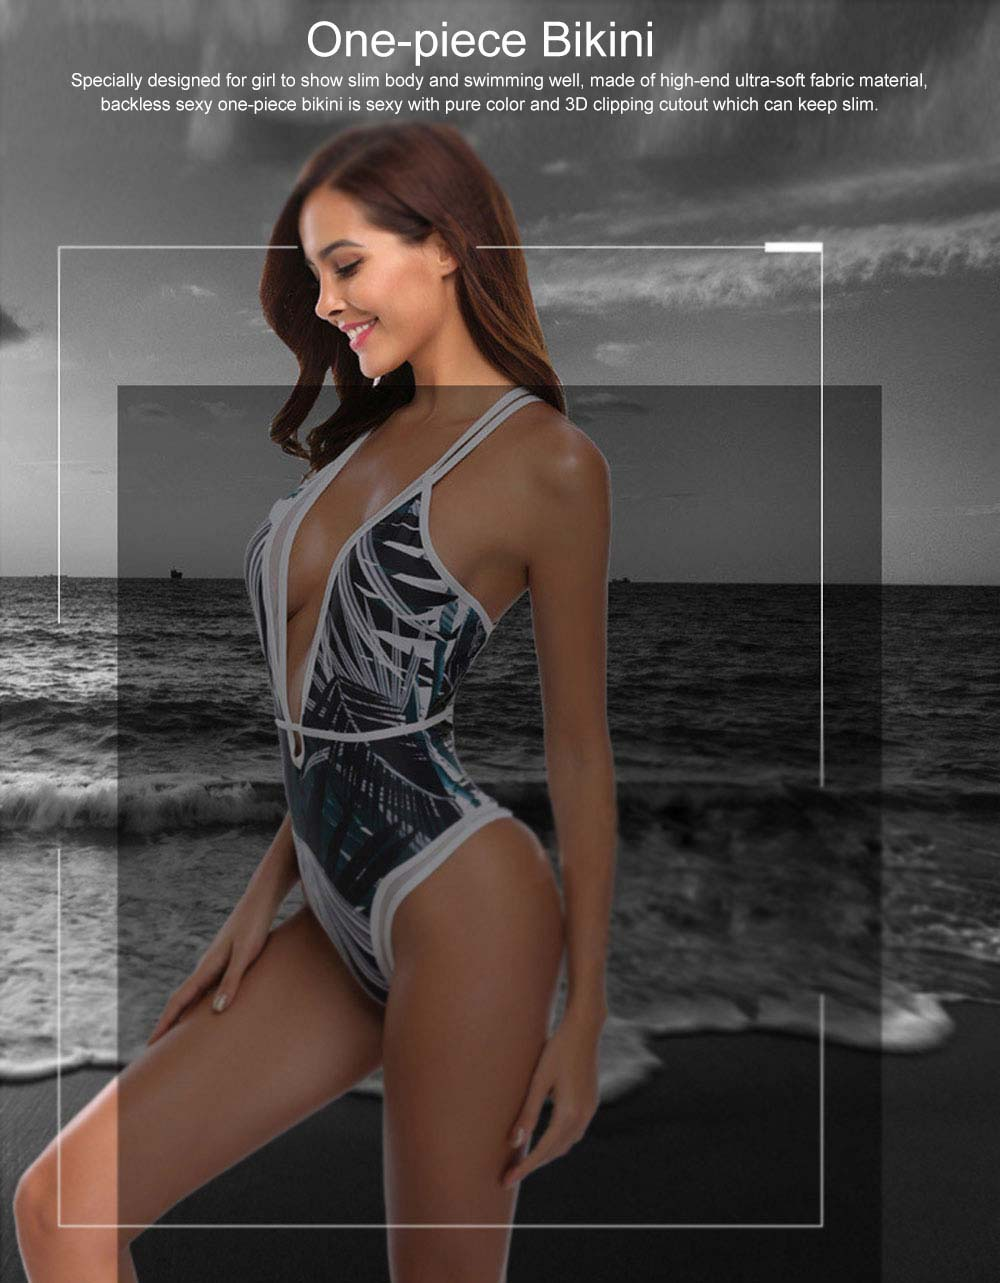 High Fork Swimsuit Backless Sexy One-piece Bikini with 3D Clipping Cutout, Skin-friendly & Comfortable Swimsuit 0